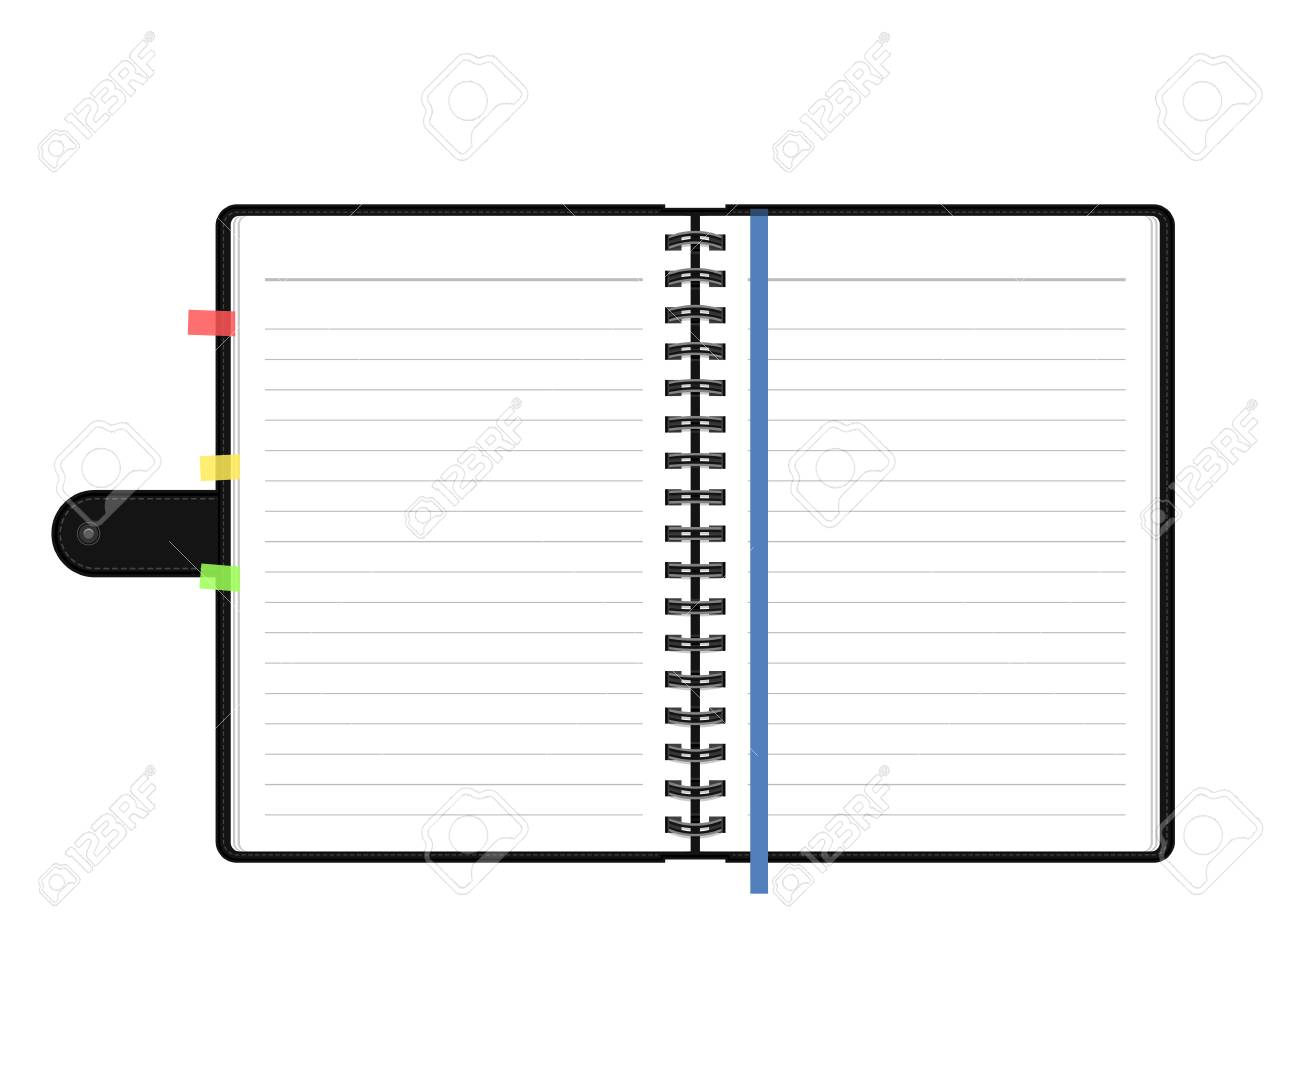 open diary or personal organizer with empty pages isolated on